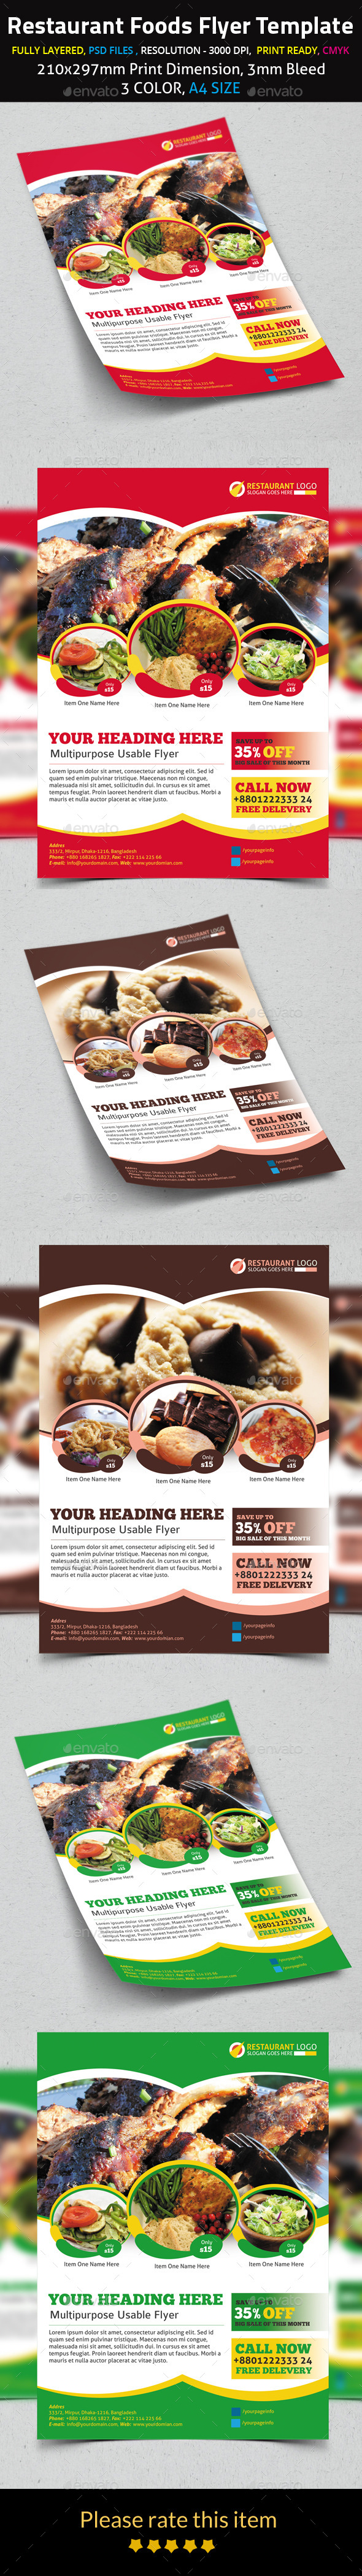 Restaurant Foods Flyer Template